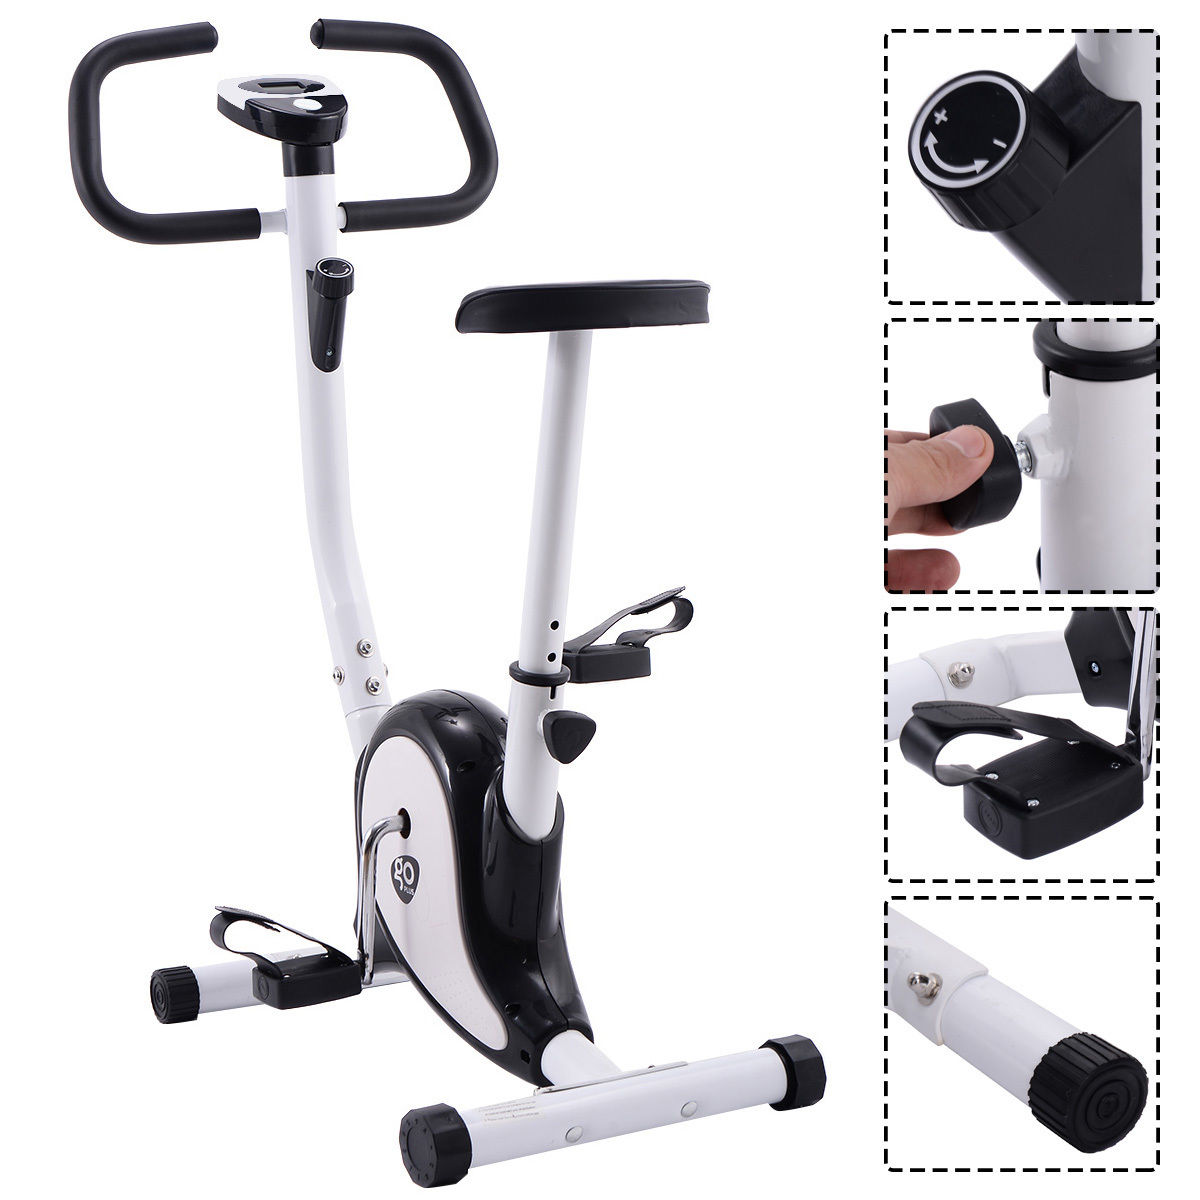 GHP Black & White Stationary Upright Workout Exercise Cycling Bike with LCD Screen